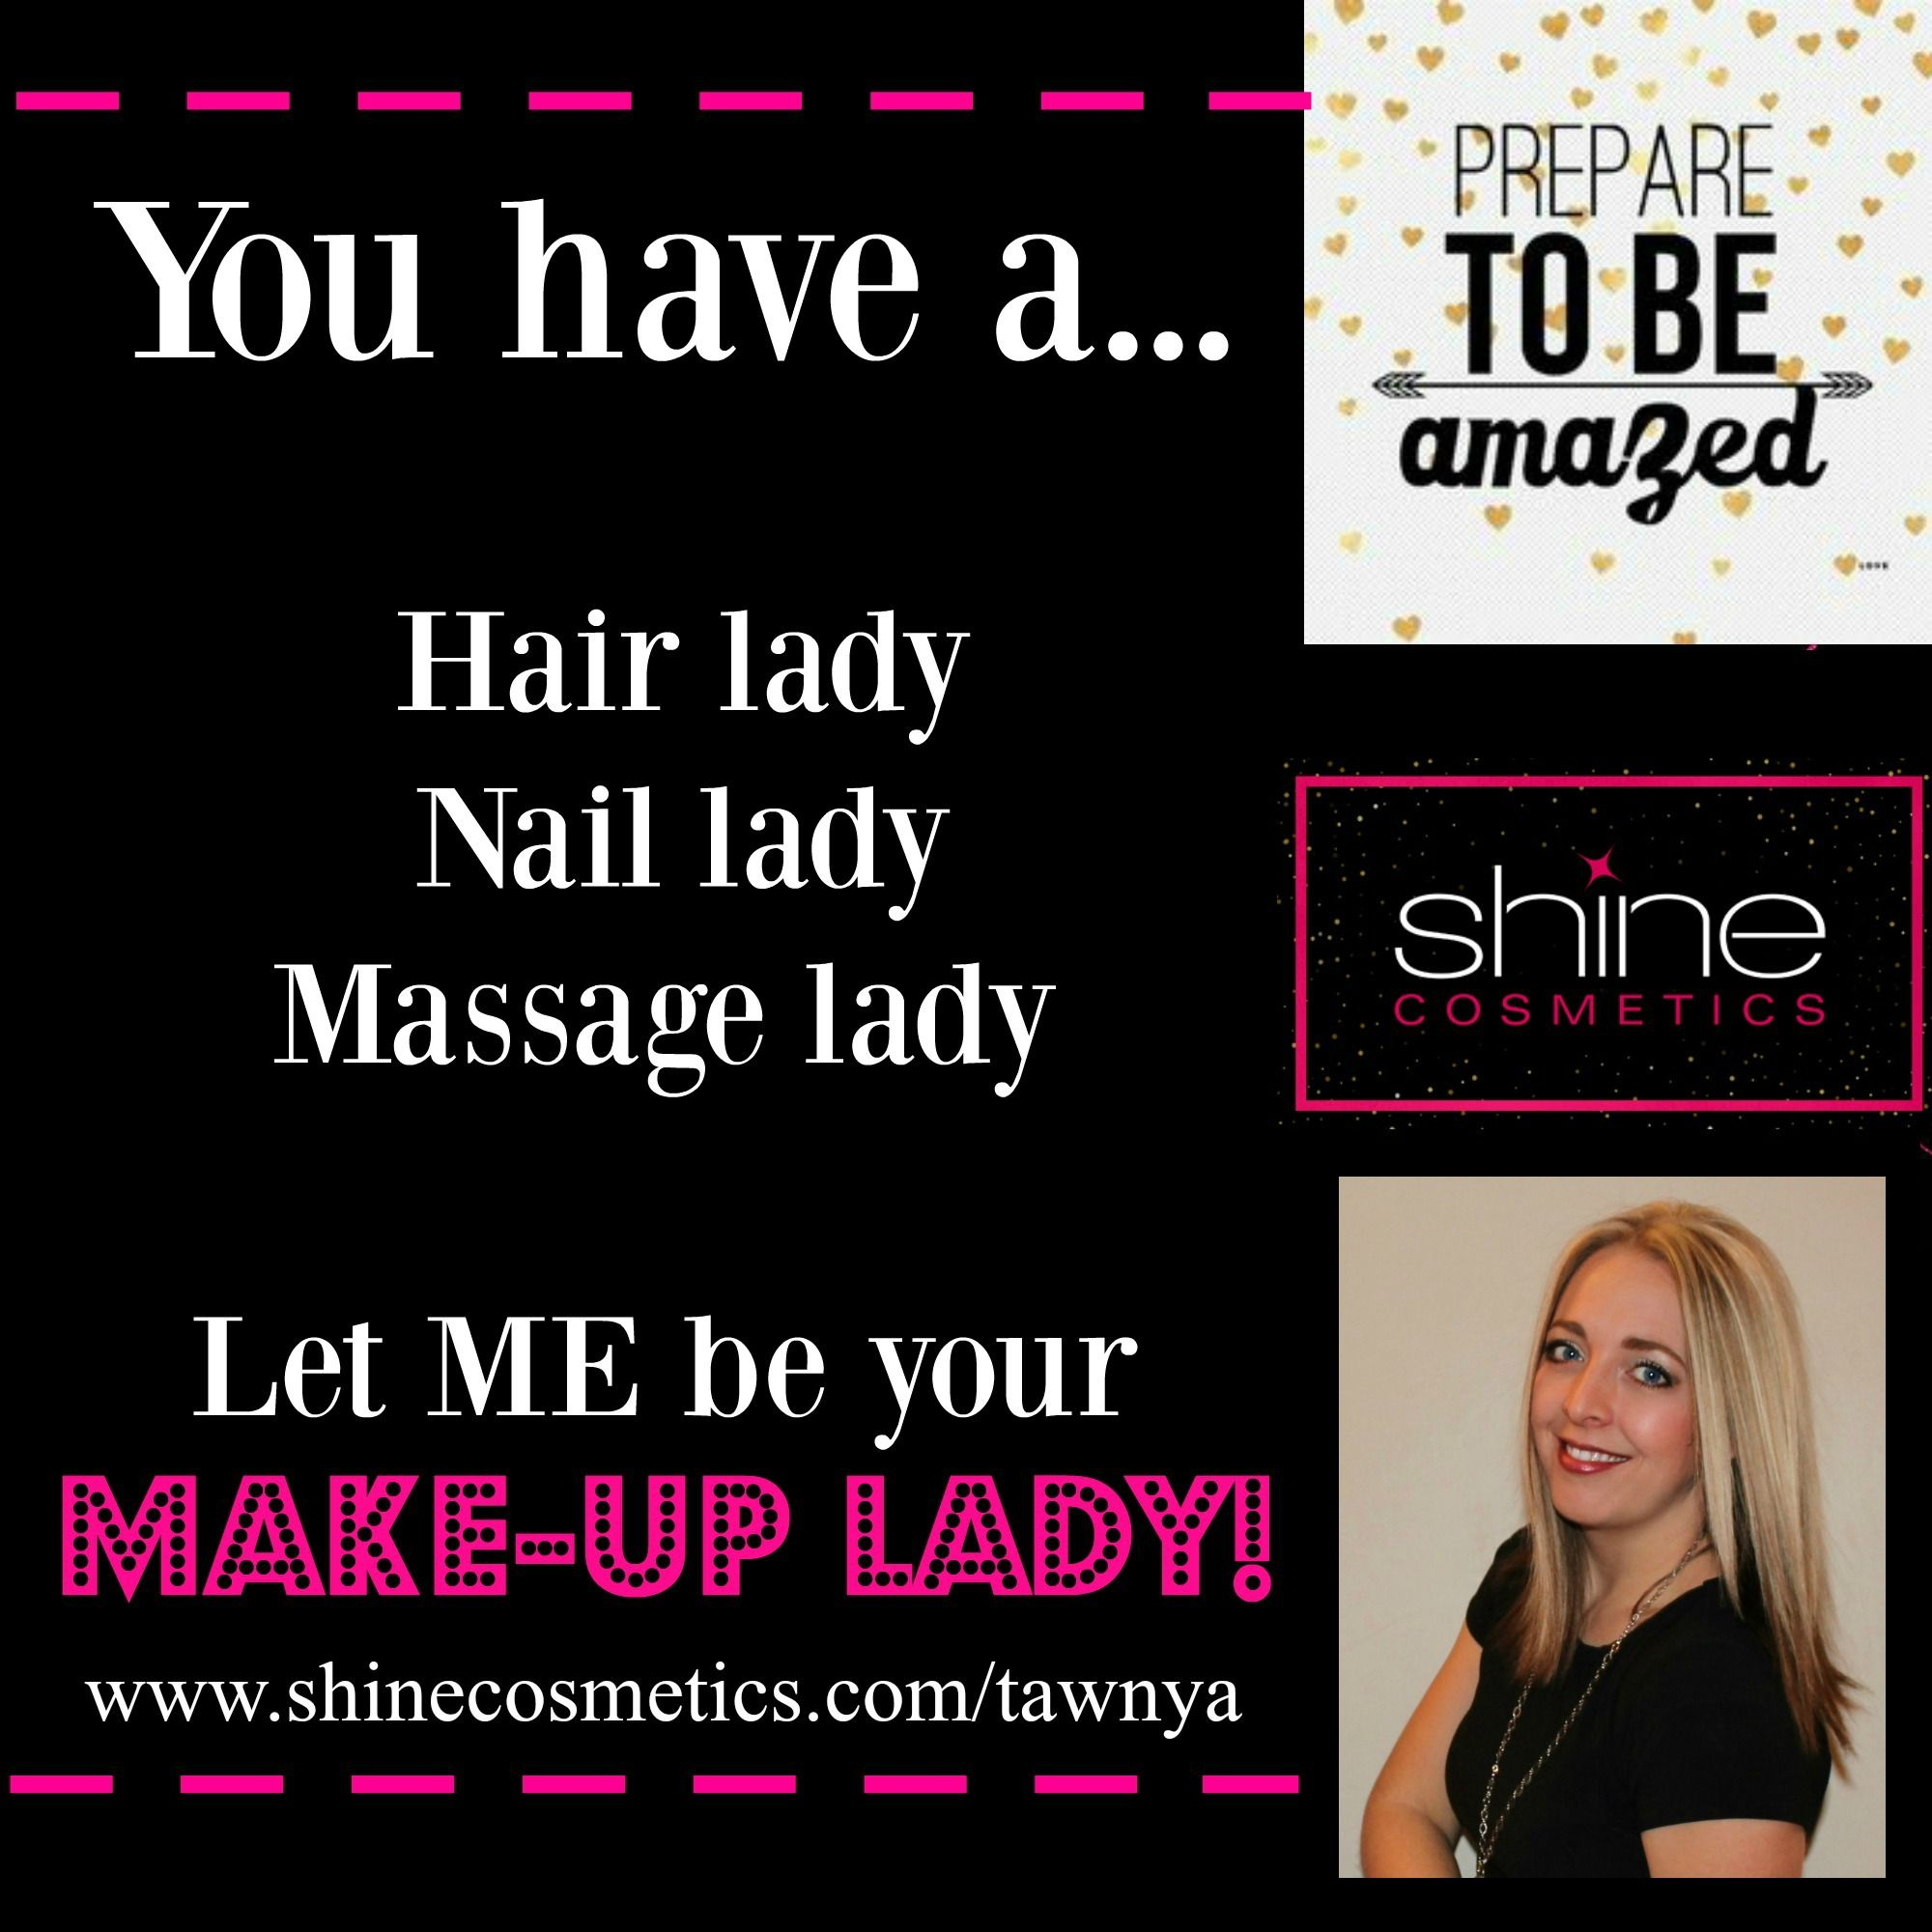 Shine Cosmetics Brand new company with the BEST makeup